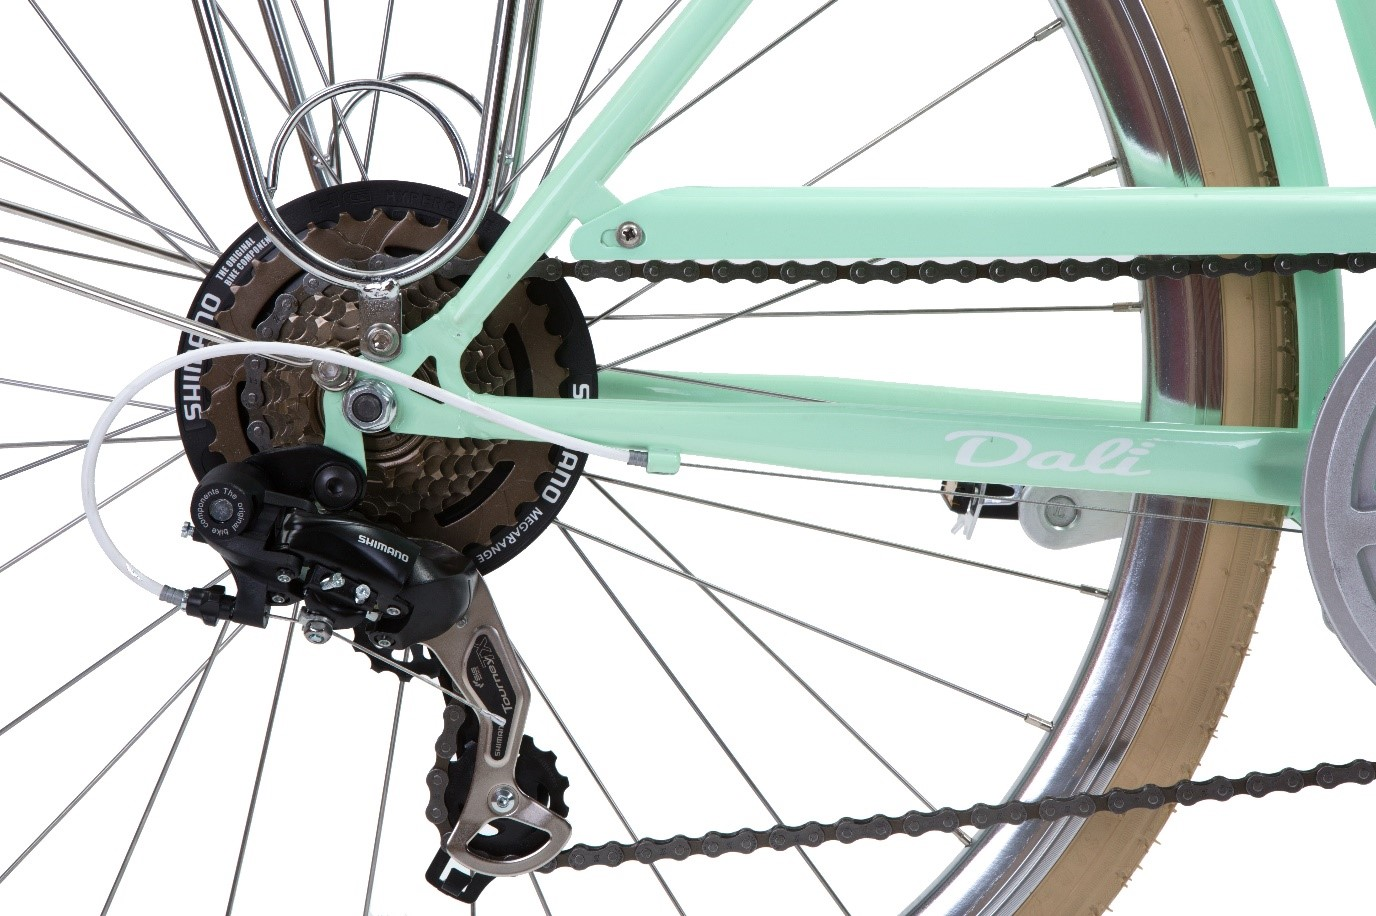 https://nixeycles.com.au/Site/wp-content/uploads/2019/05/nixeycles-DALI-complete-shimano-gear-system.jpg